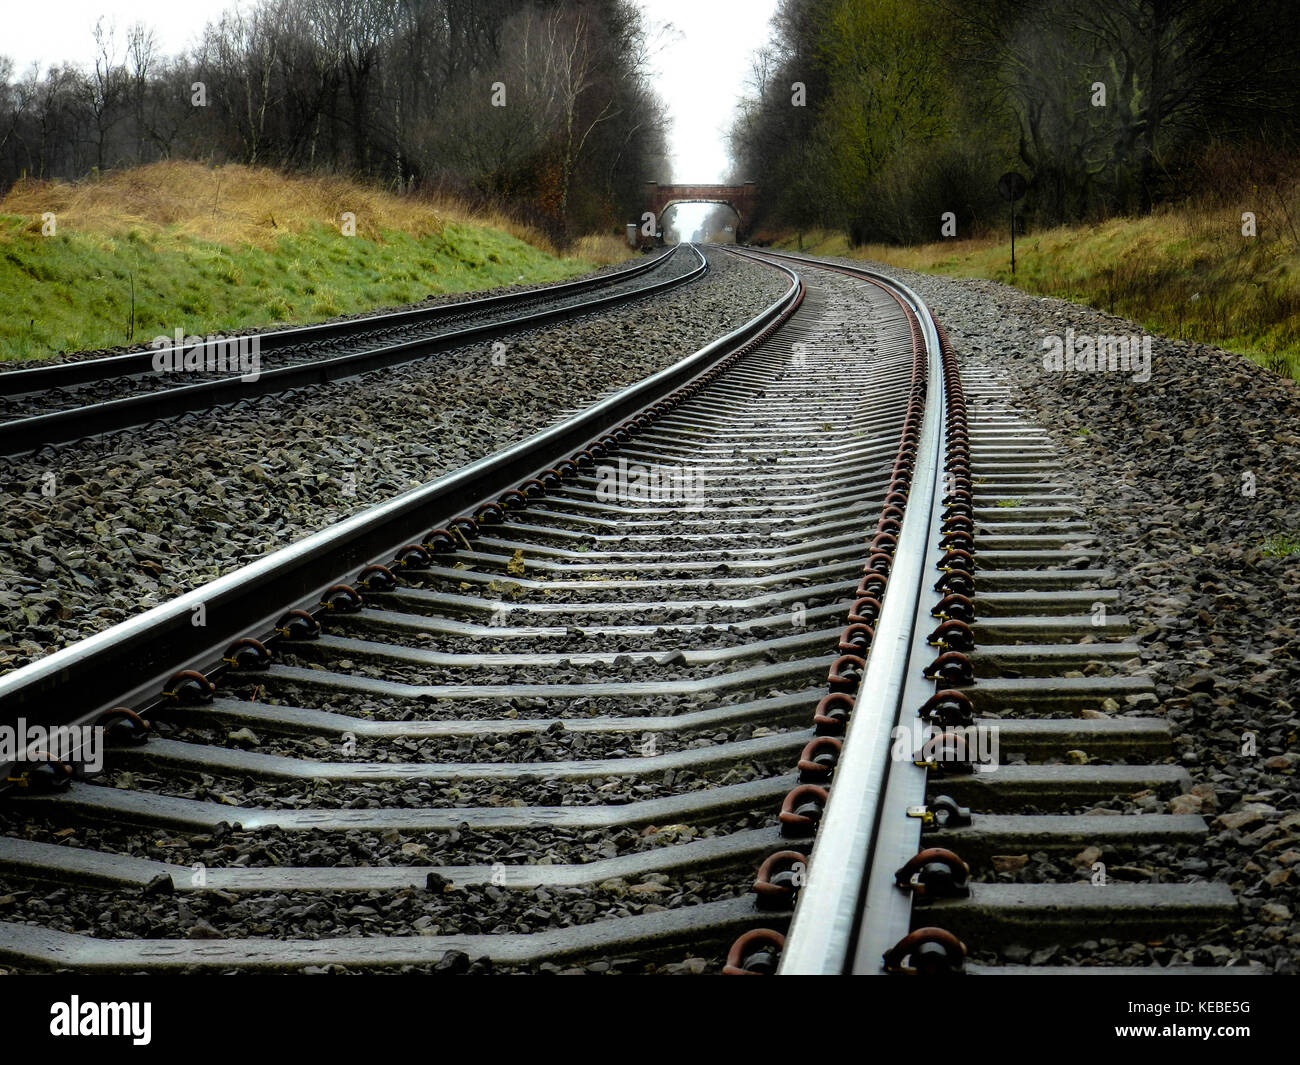 Train Track Stock Photos & Train Track Stock Images - Alamy